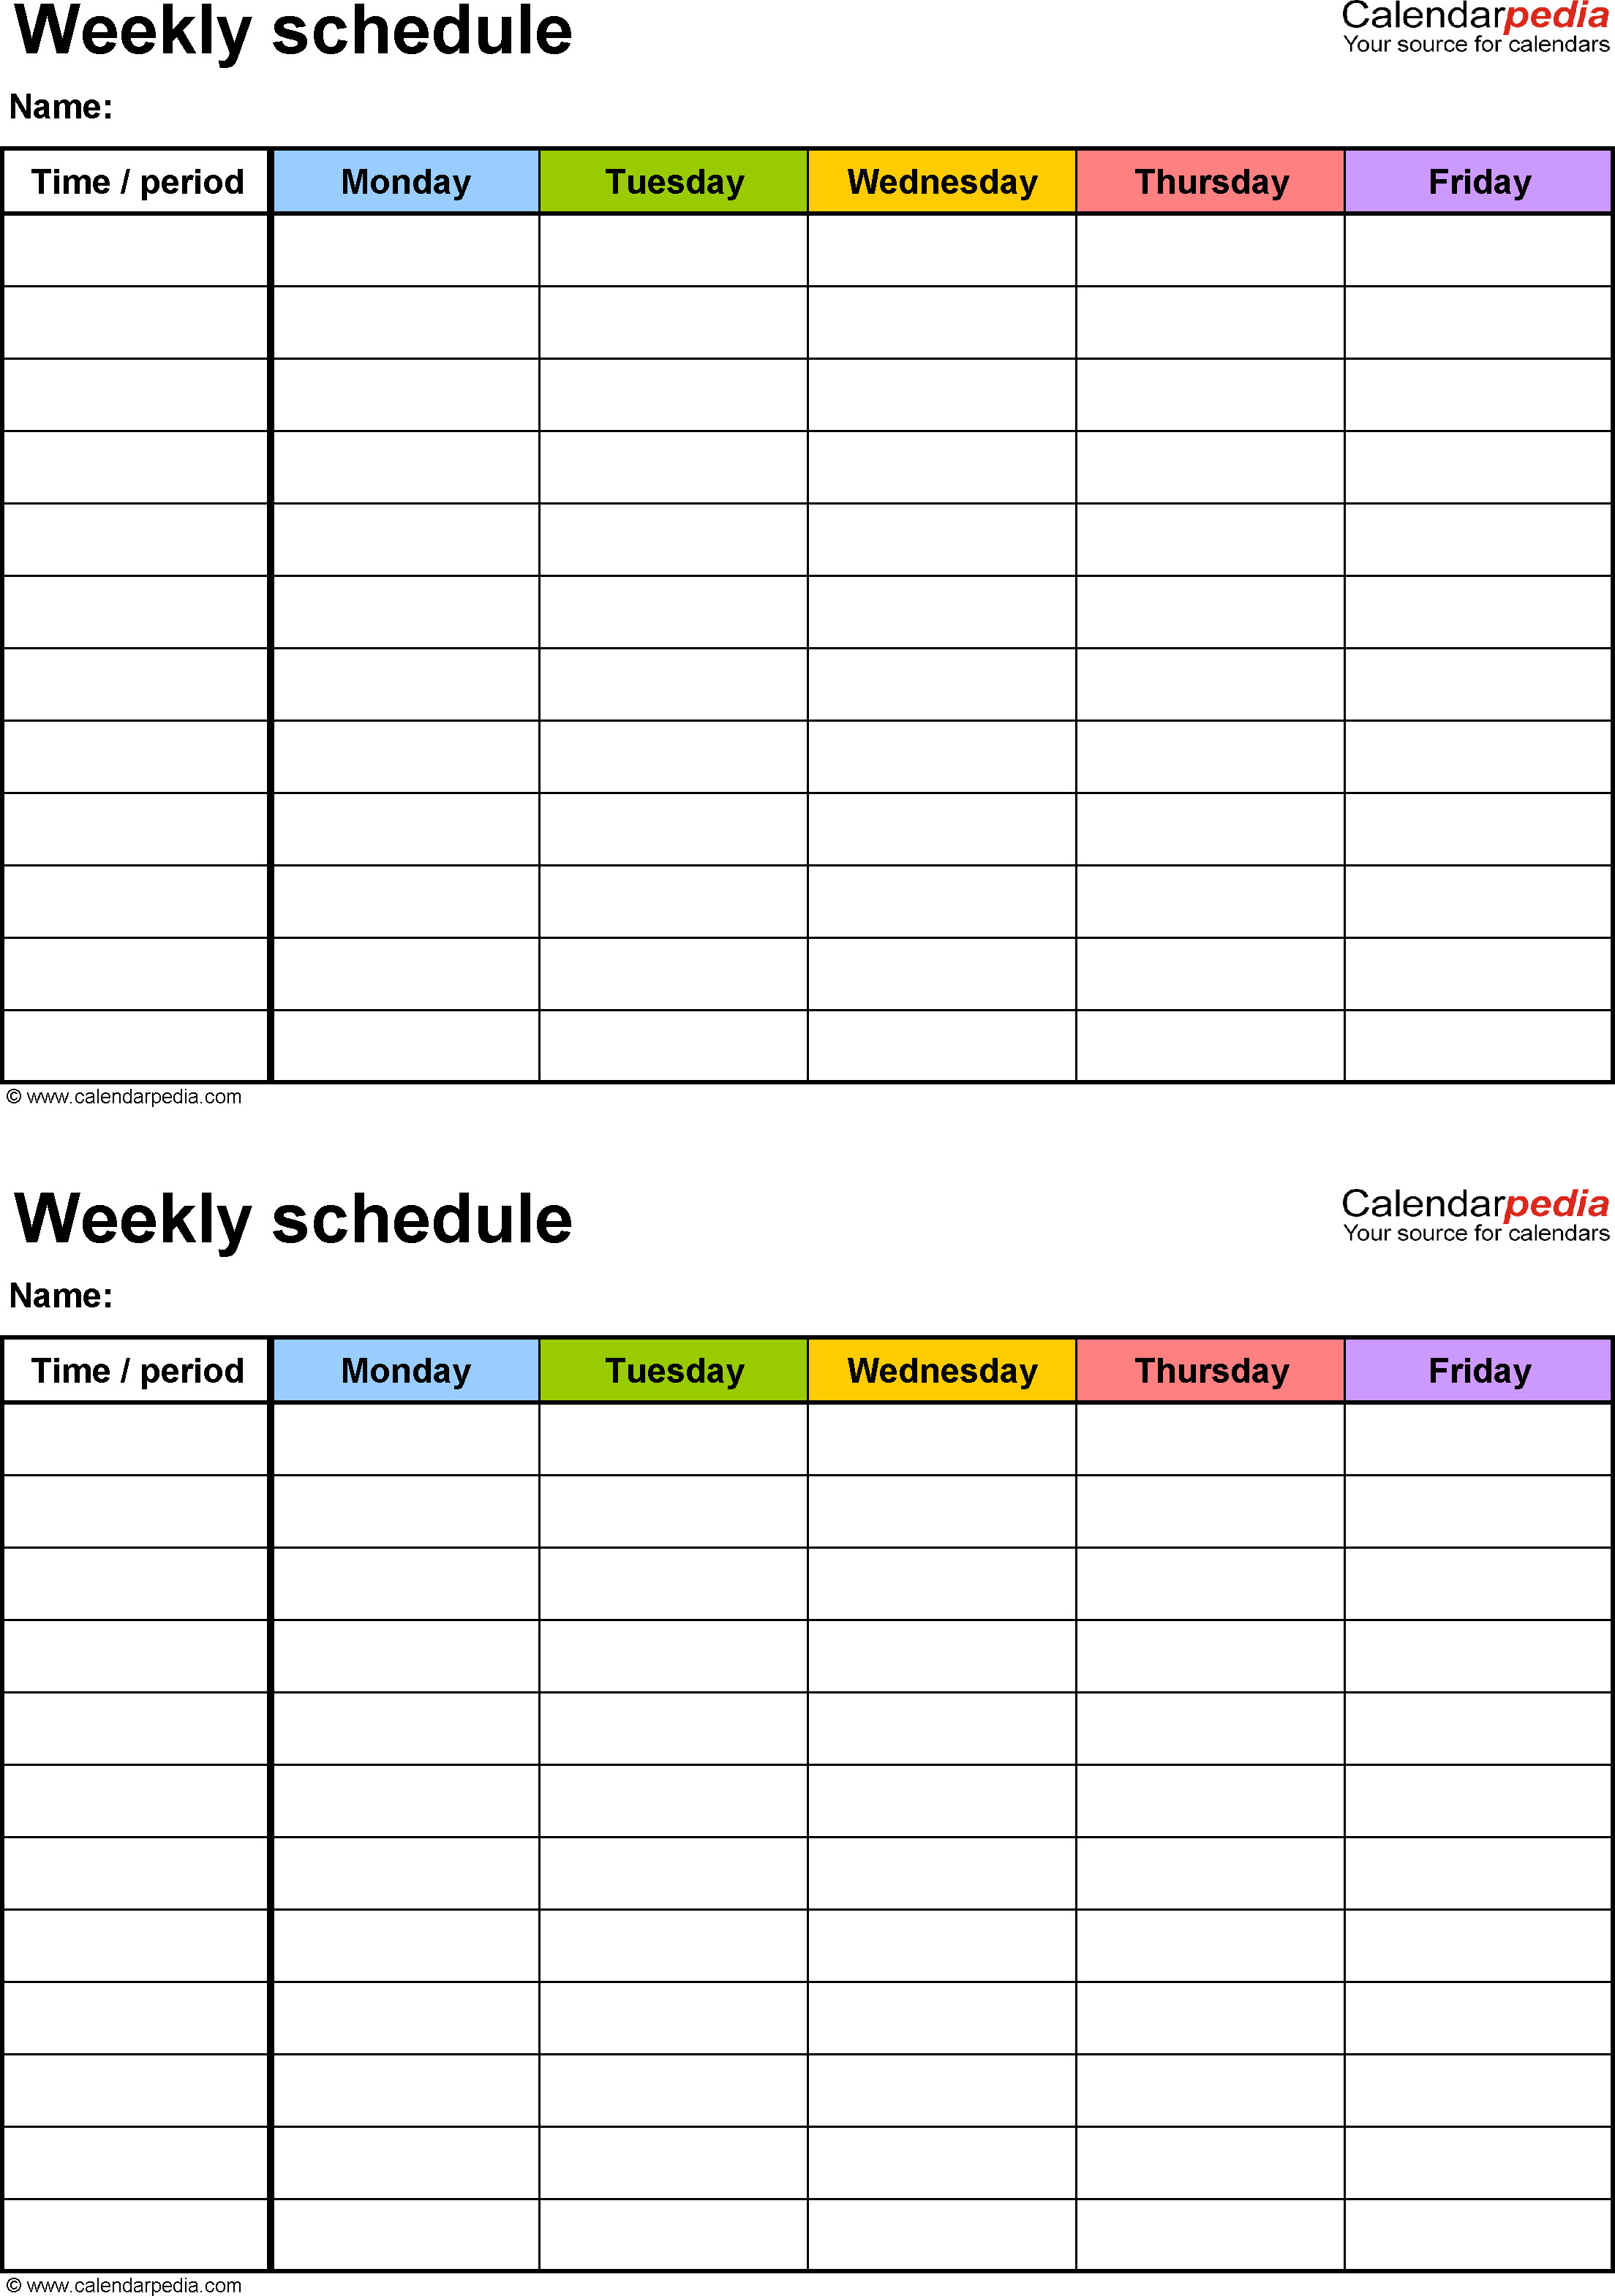 Printable Weekly Schedule Template Free Weekly Schedule Templates for Word 18 Templates